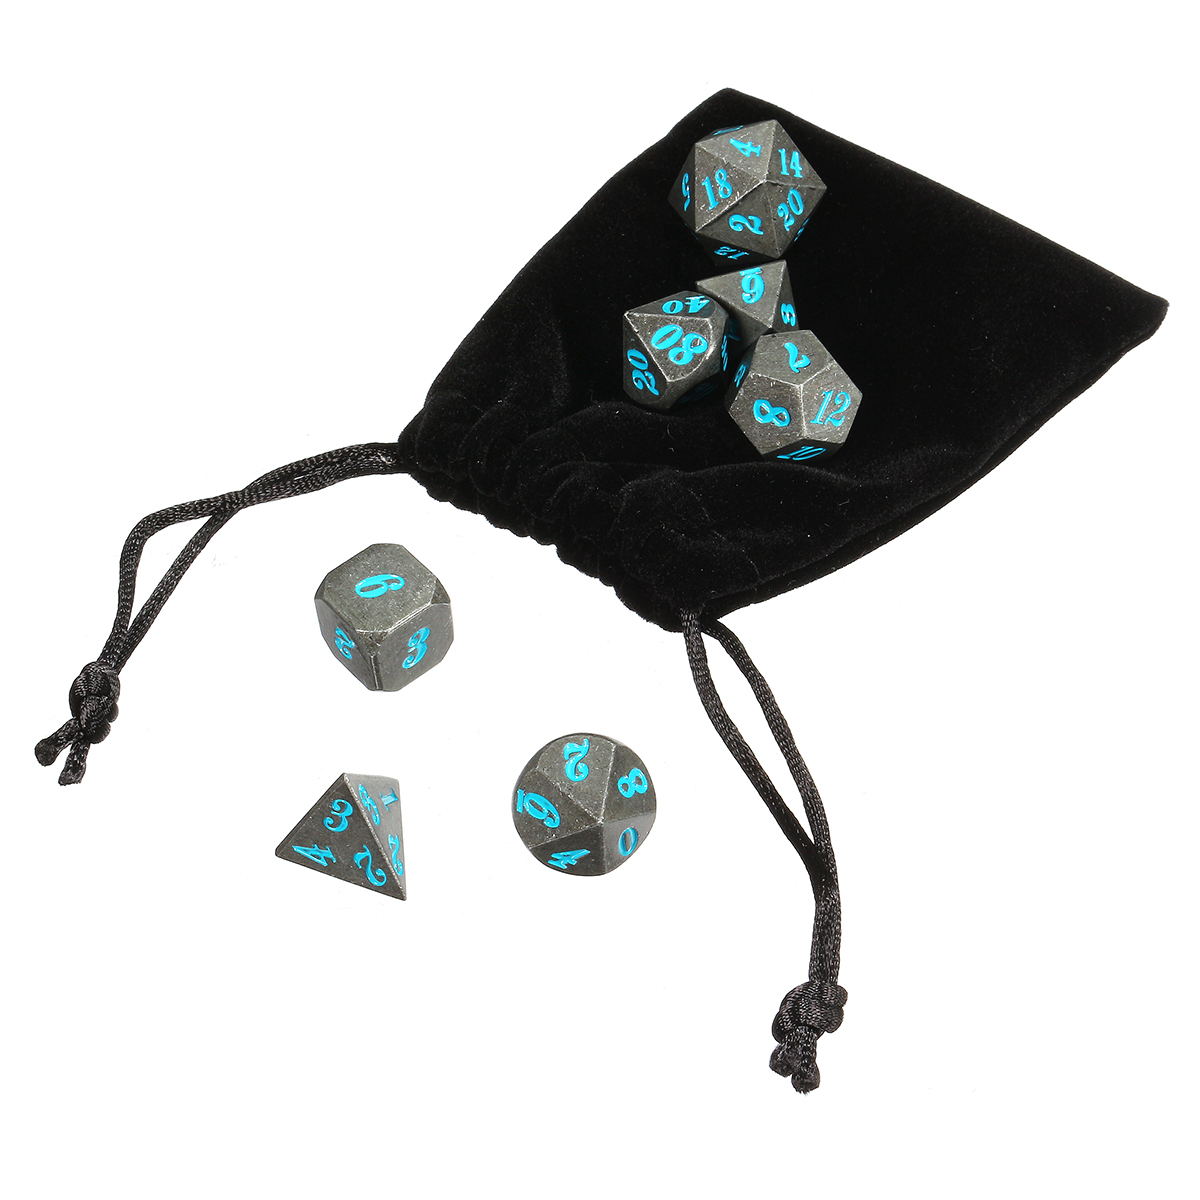 Antique Metal 7 Pcs Multisided Dice Heavy Metal Polyhedral Dices Set w/ Bag